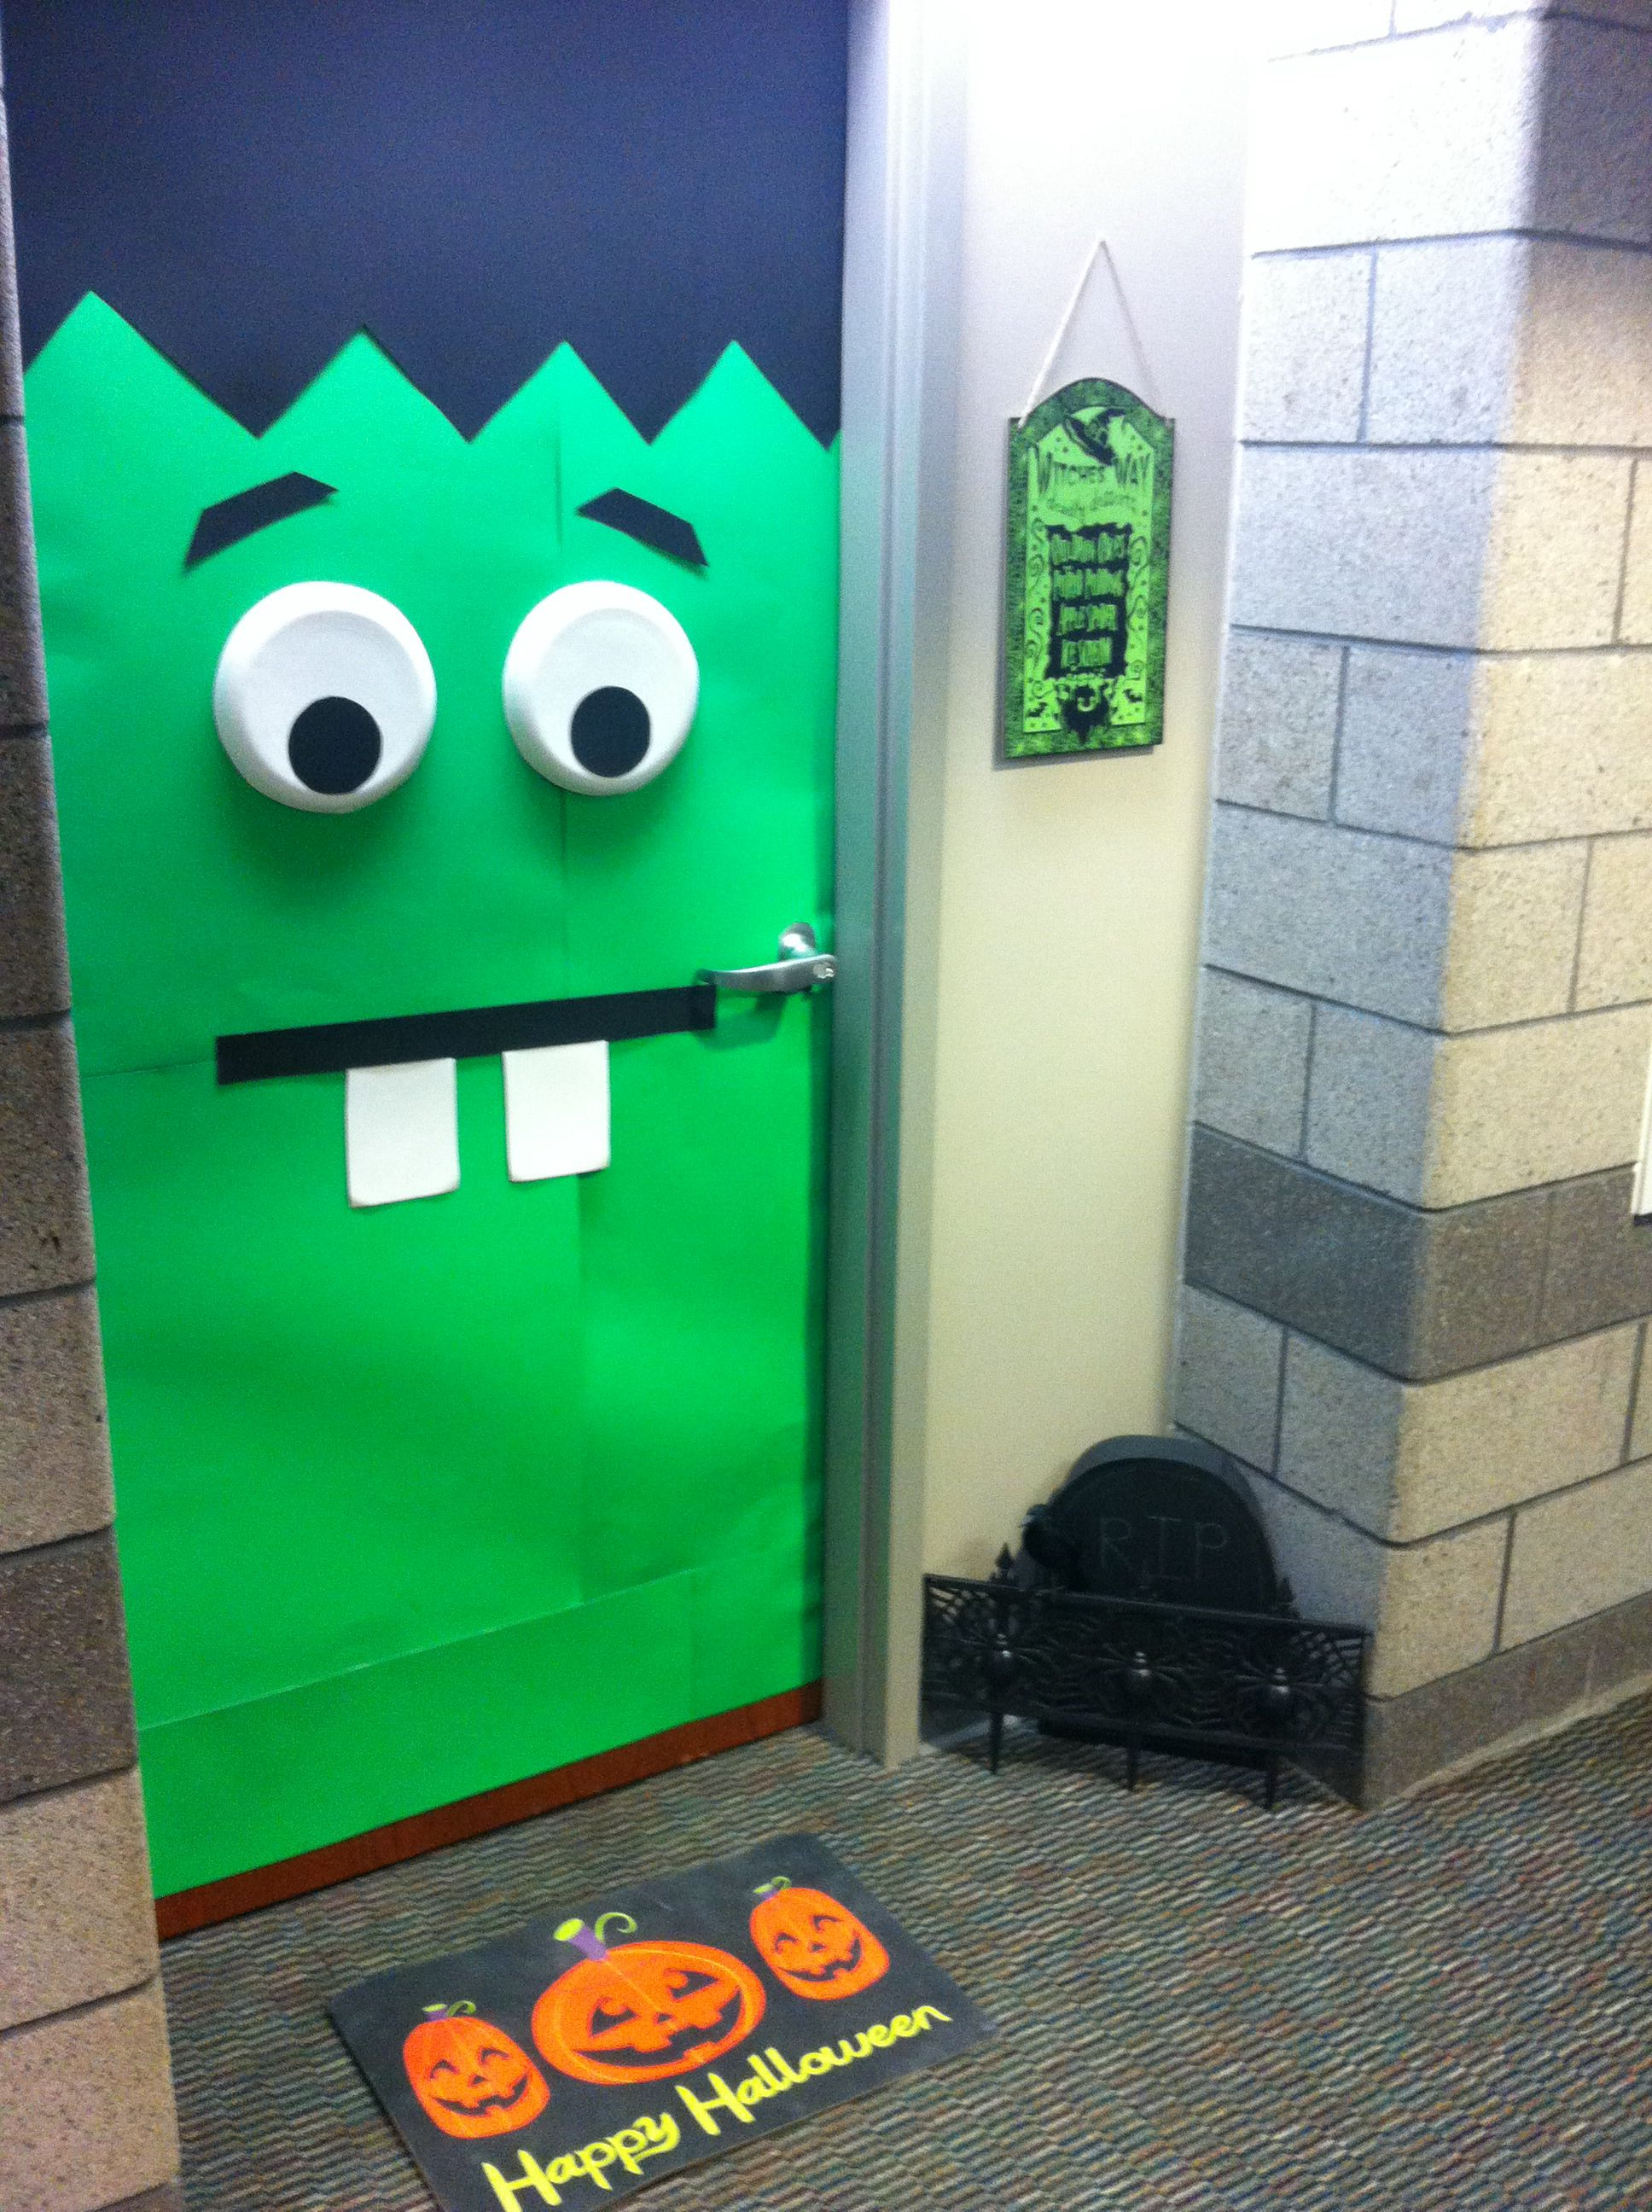 Halloween dorm door decorations - College Dorm Room Halloween Door Decorating